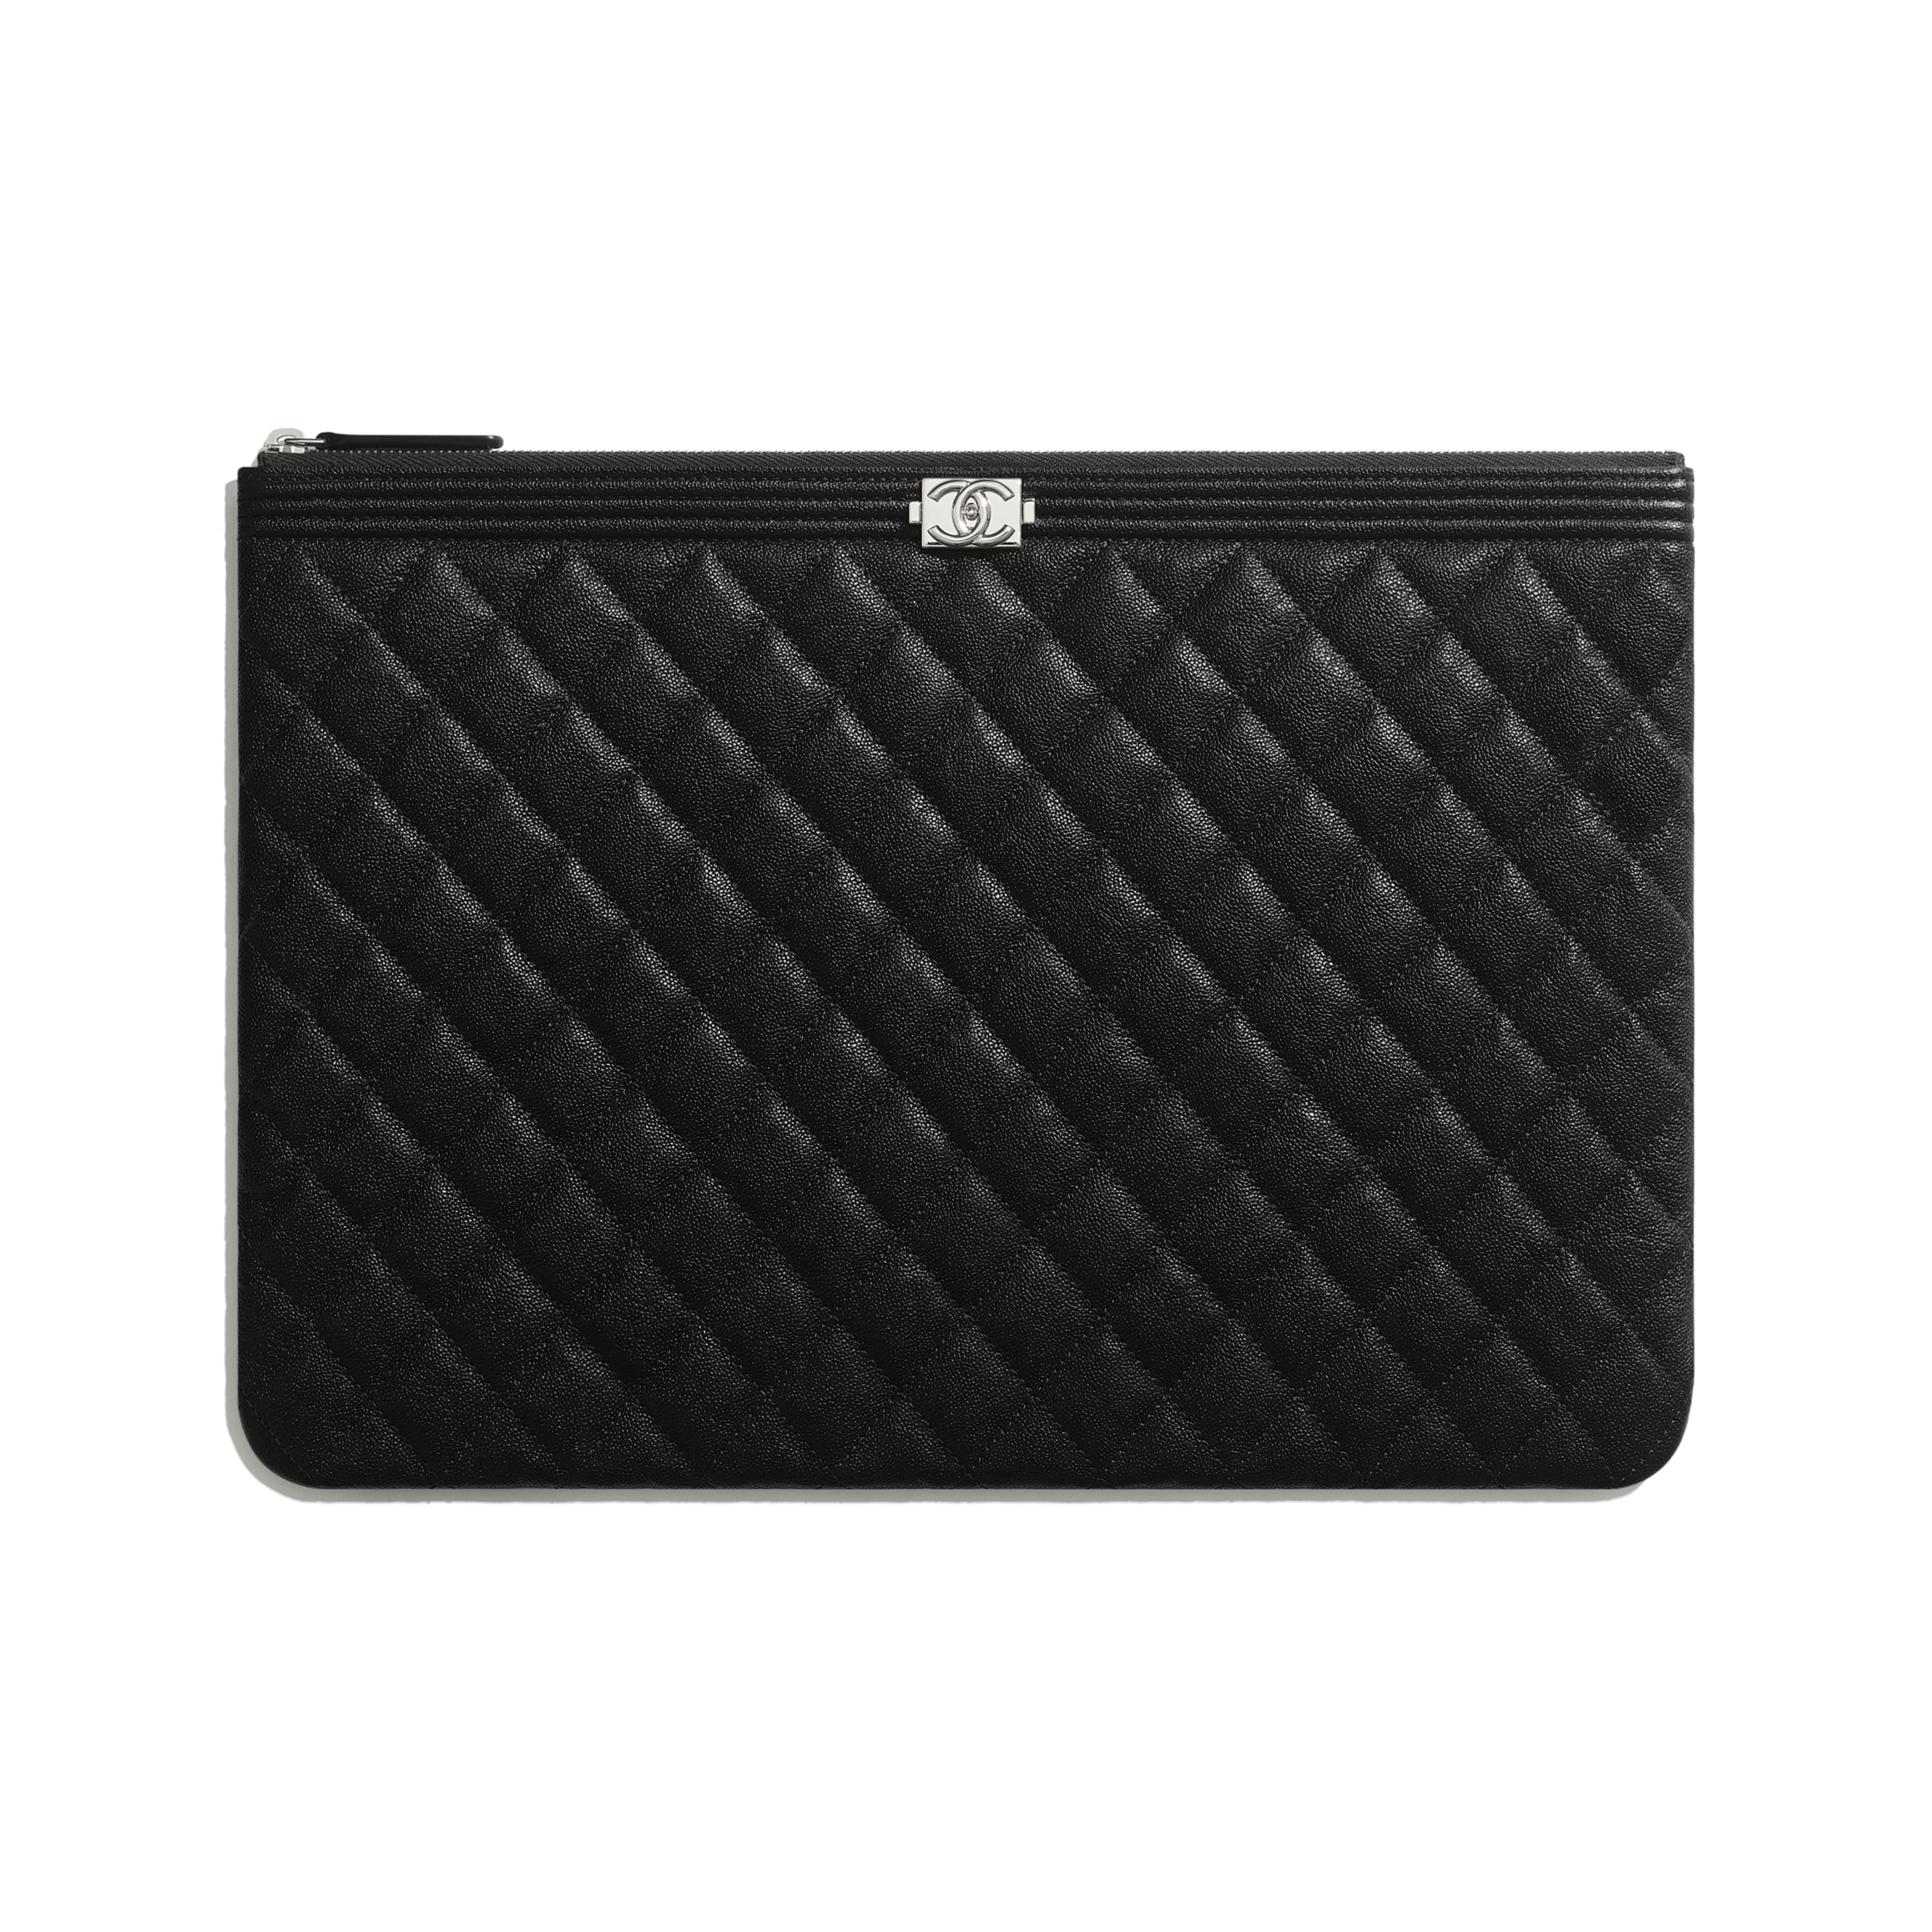 BOY CHANEL Large Pouch - Black - Grained Calfskin & Silver-Tone Metal - CHANEL - Default view - see standard sized version